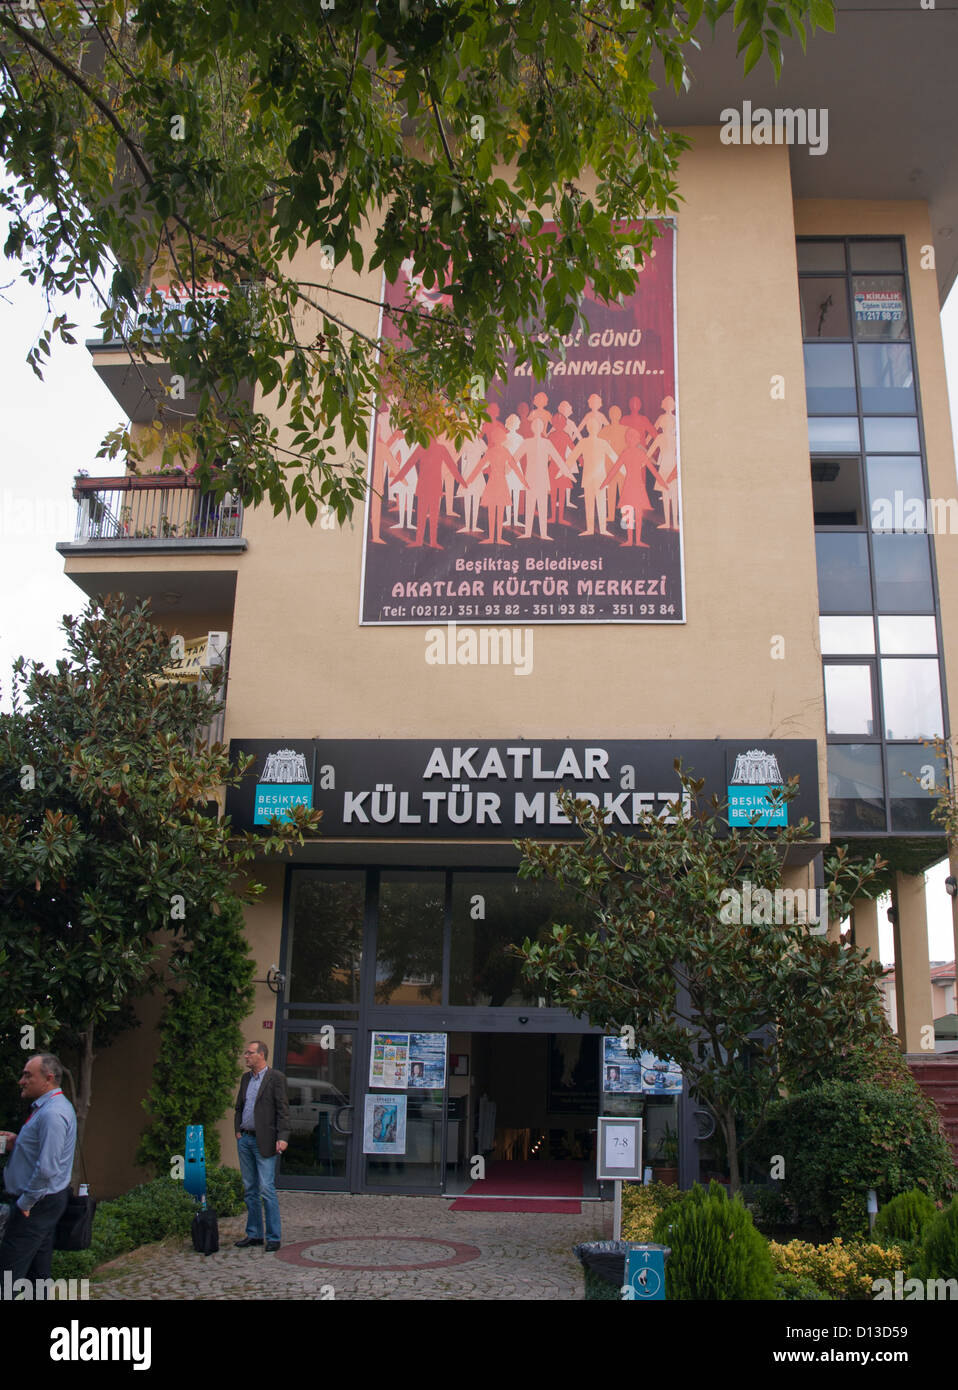 Akatlar kultur merkesi, cultural center in Besiktas Istanbul Turkey - Stock Image